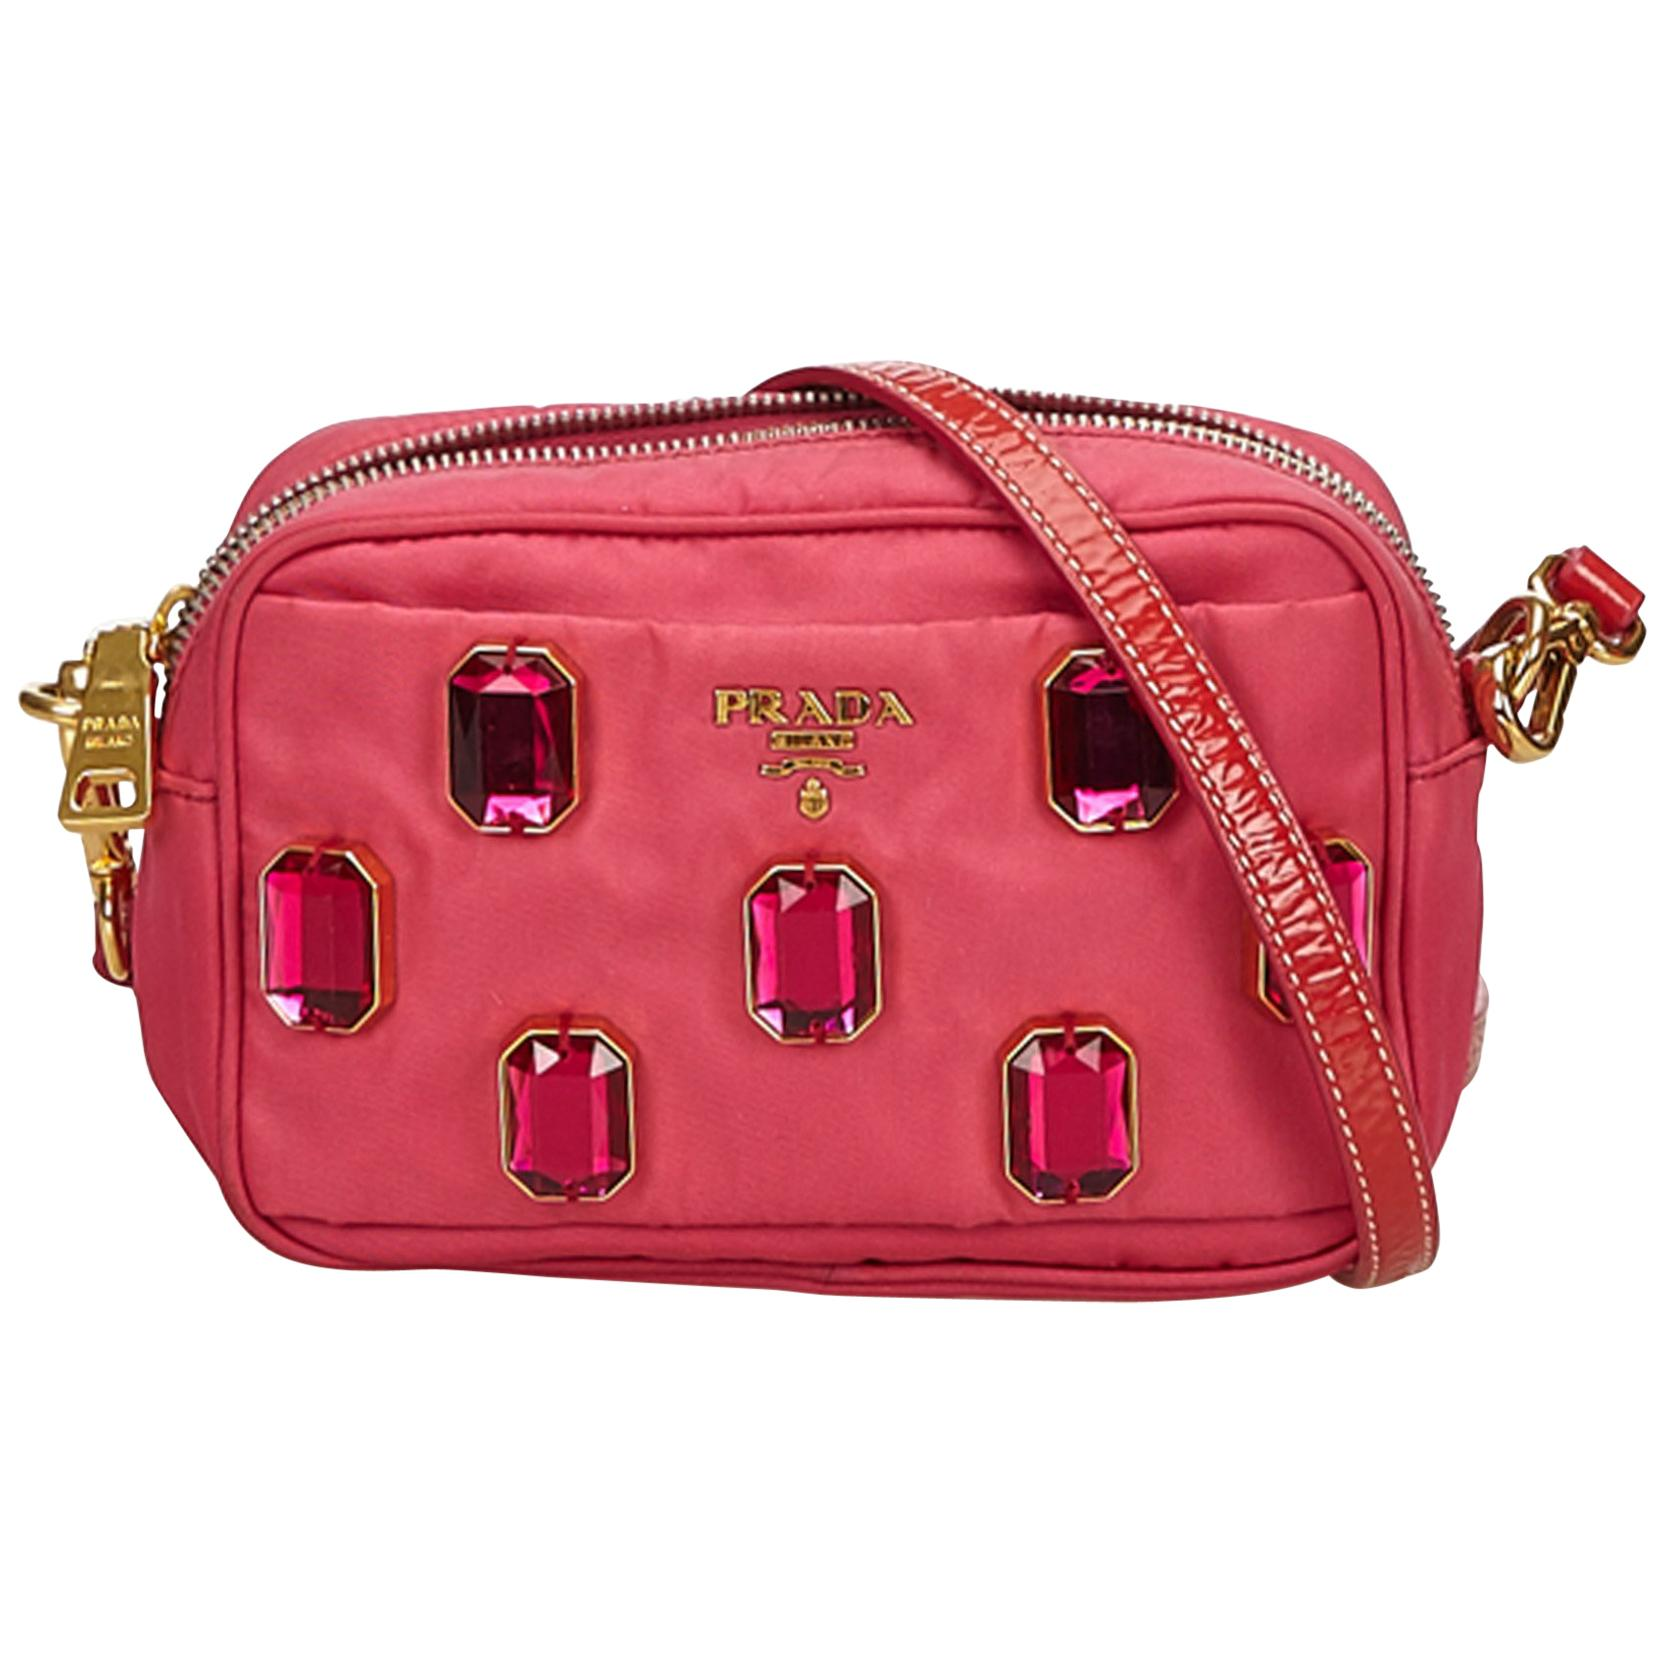 72fa400cdd939e ... denmark prada pink jeweled nylon crossbody bag for sale ea7da 50d21